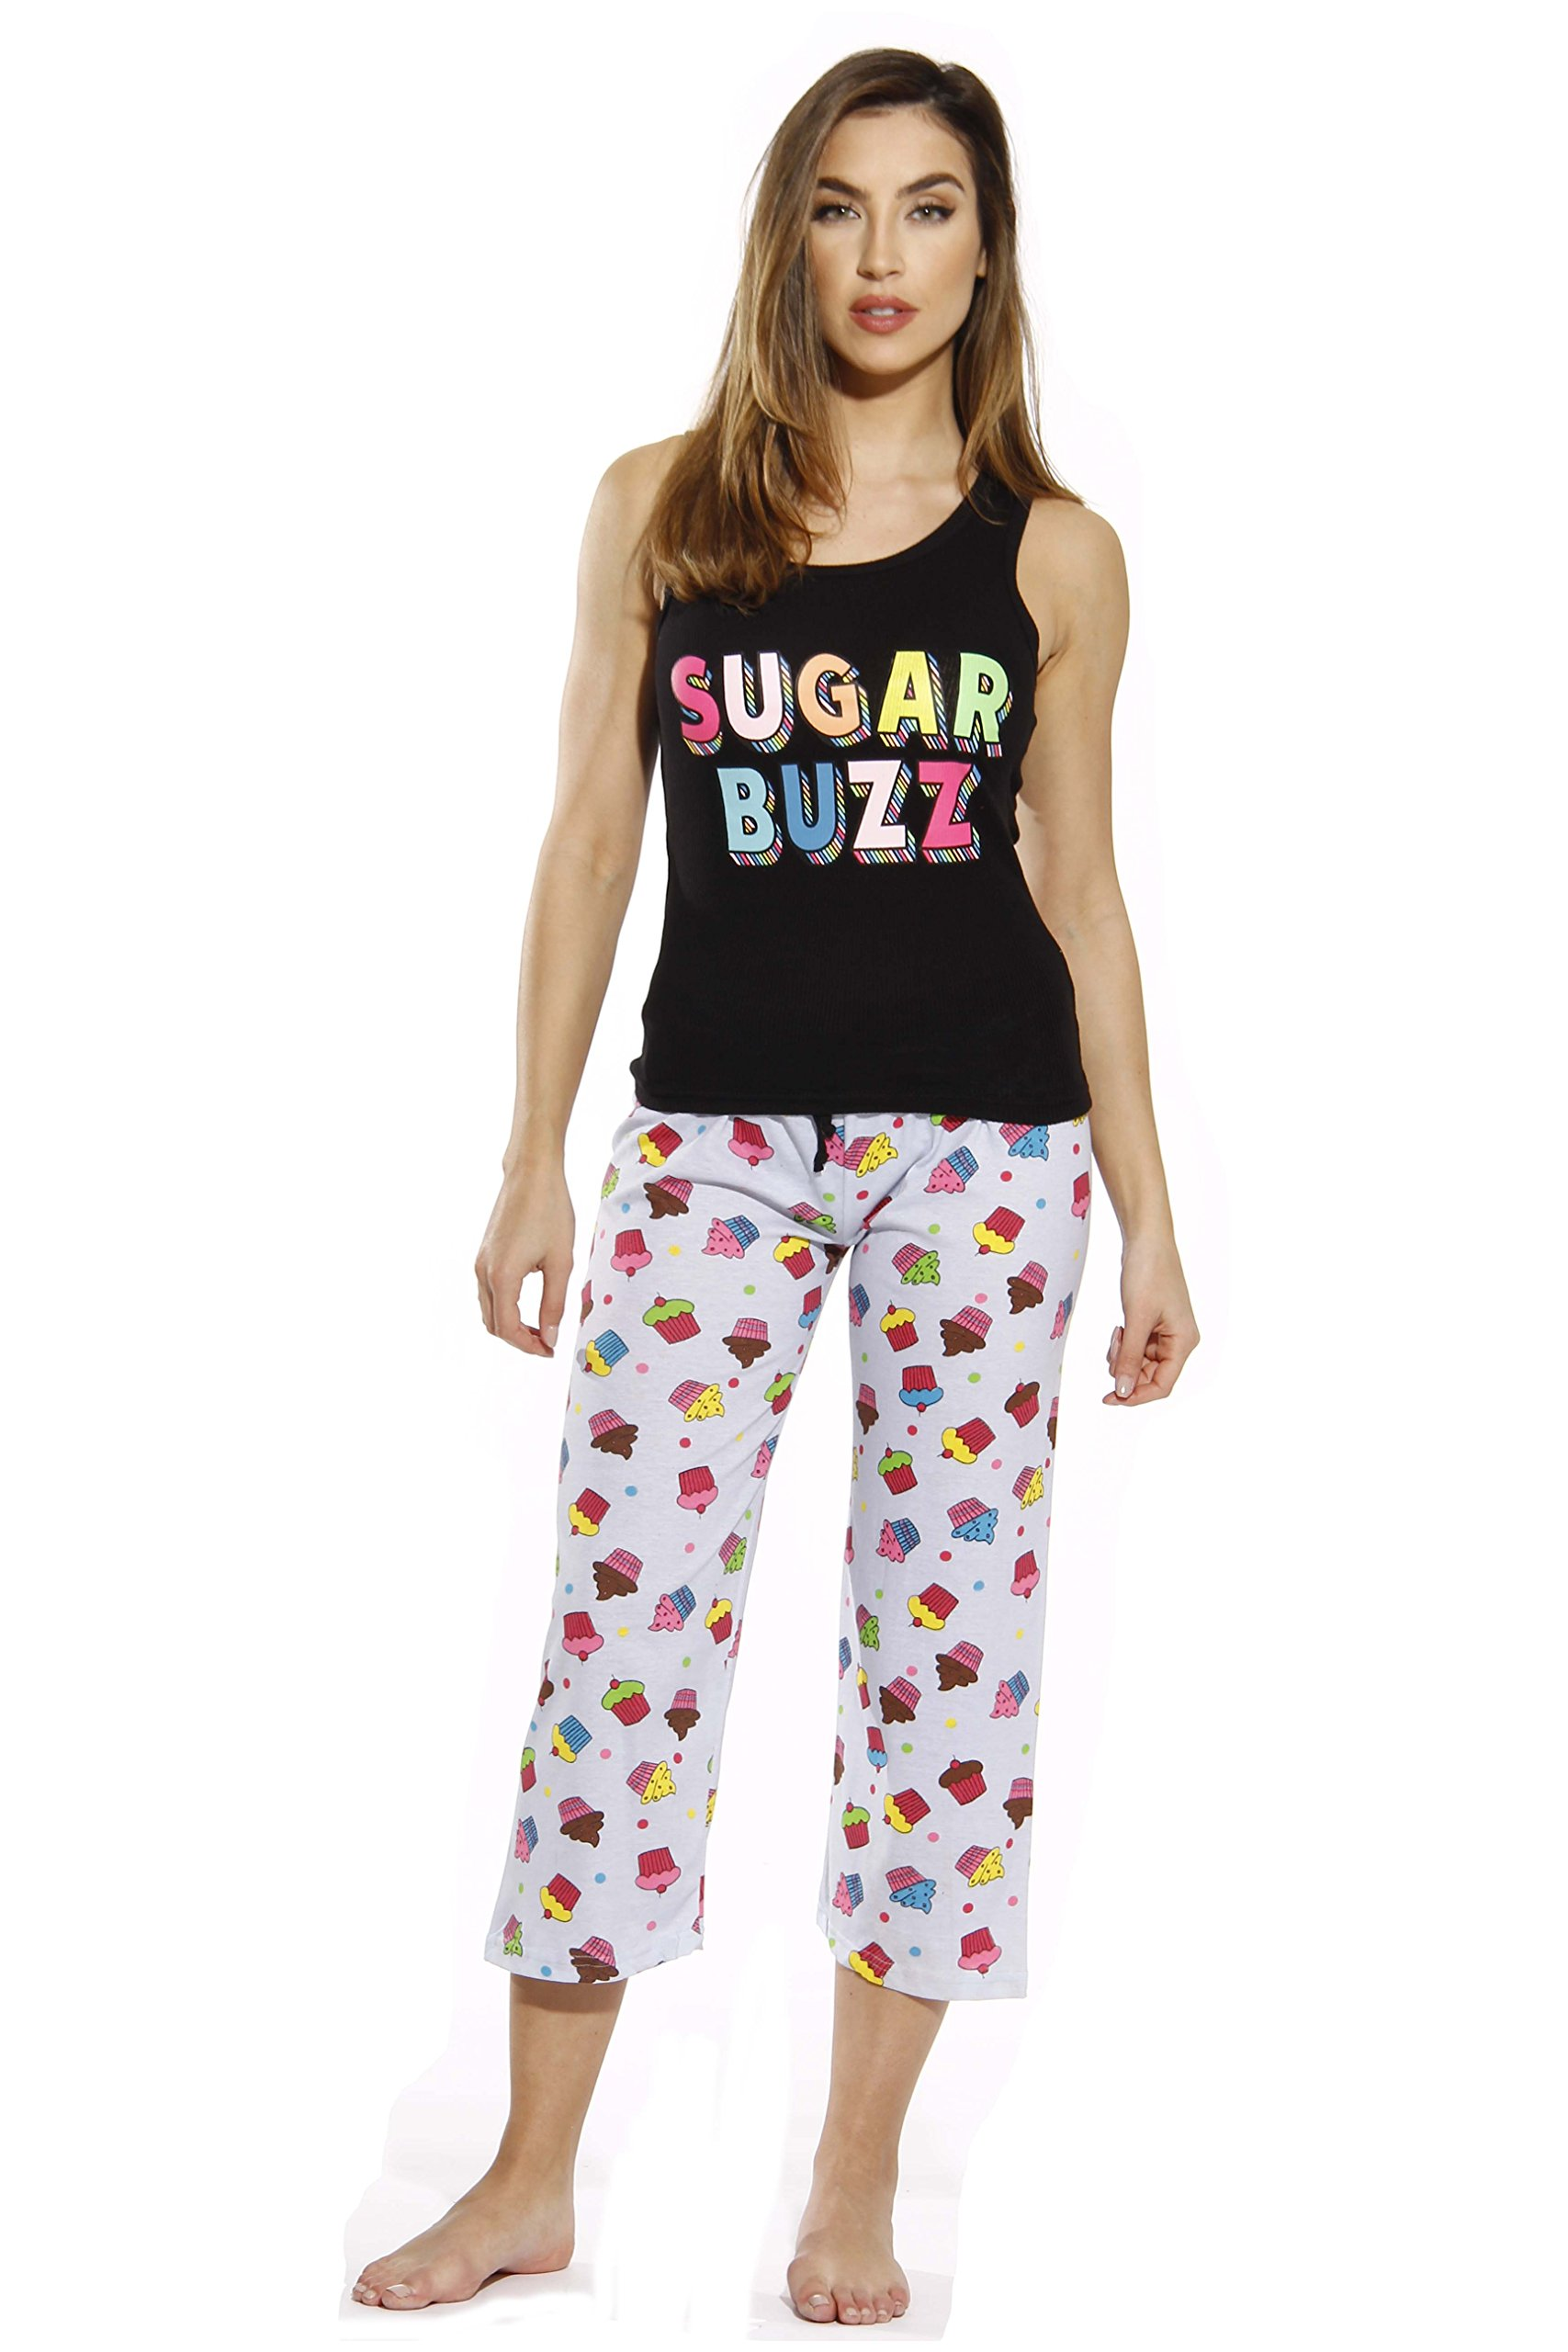 Just Love 6329-10008-XL Capri Sets/Women Sleepwear/Womans Pajamas/PJS by Just Love (Image #1)